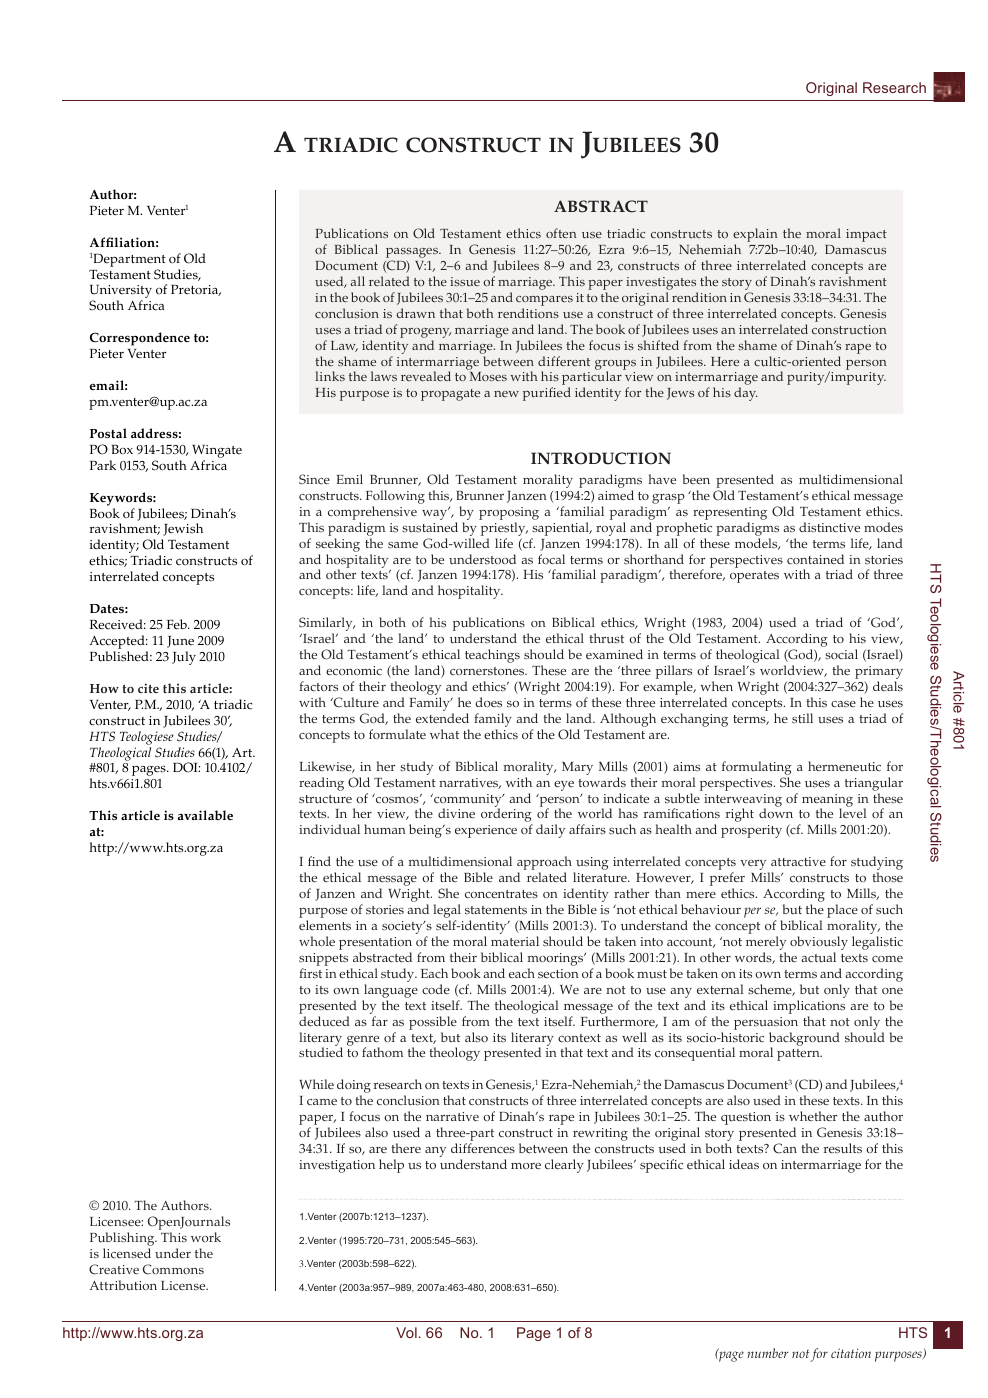 A triadic construct in Jubilees 30 – topic of research paper in